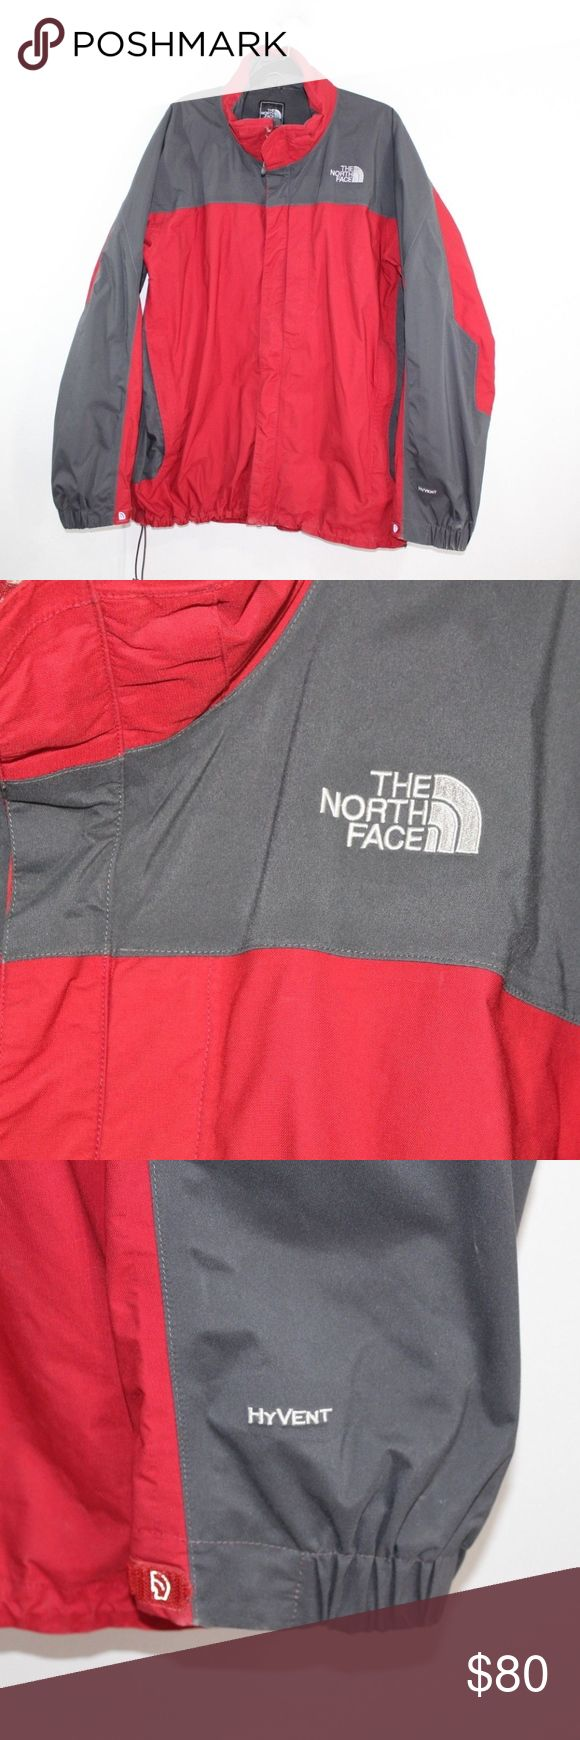 The North Face HyVent Varius Guide Jacket 2XL Red The North Face HyVent Varius Guide Jacket  Jacket  Comes from a smoke-free household. No hood  The size is 2XL and the measurements are 27 inches underarm to underarm and 31inches top to bottom. Neck seam to cuff is 34 inches  Red and Gray  Nylon  Check out my other items in my store!  J9 The North Face Jackets & Coats Performance Jackets